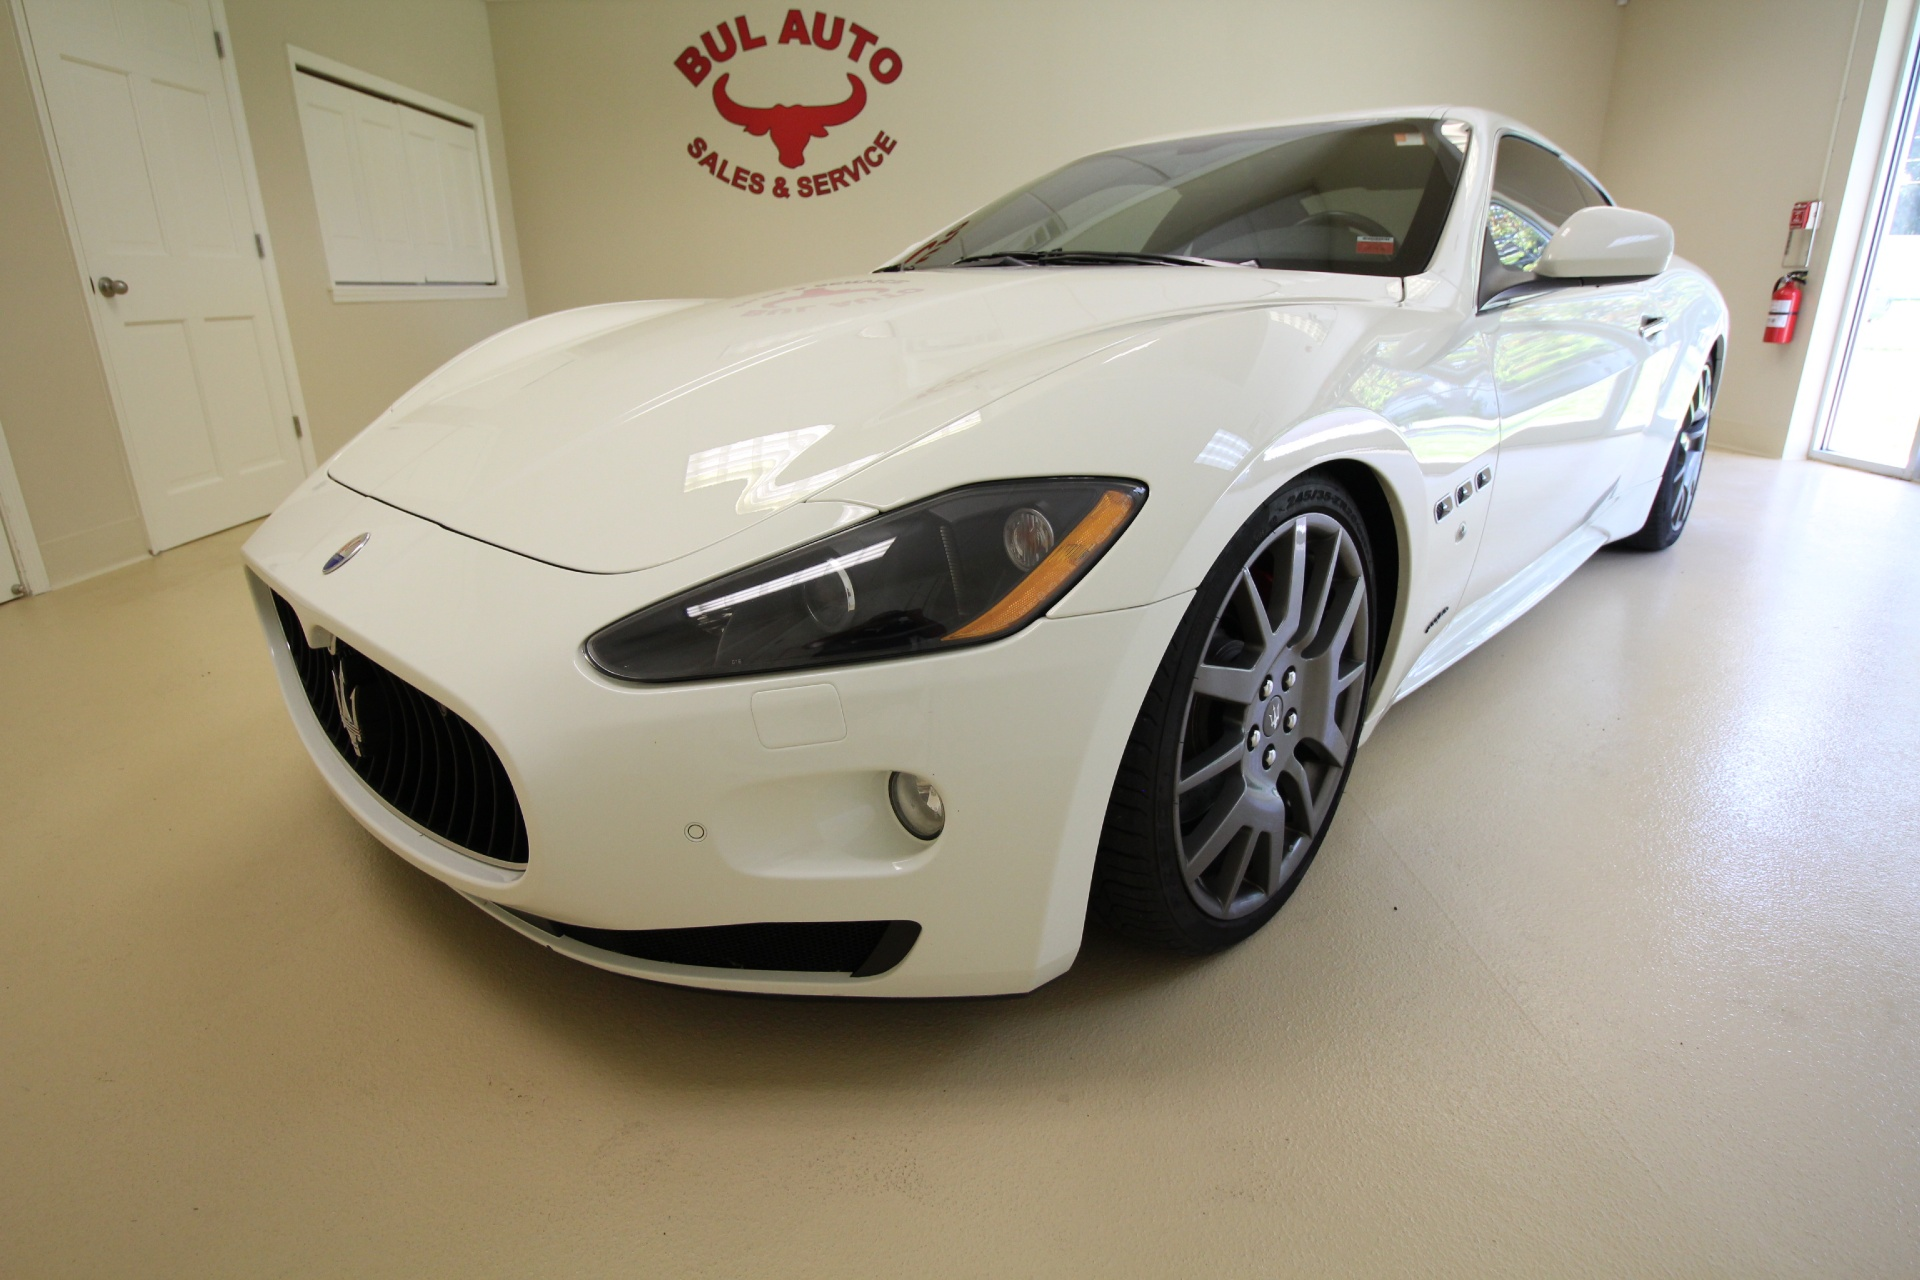 Service Manual How To Replace Headl Bulb 2009 Maserati Granturismo Service Manual Front